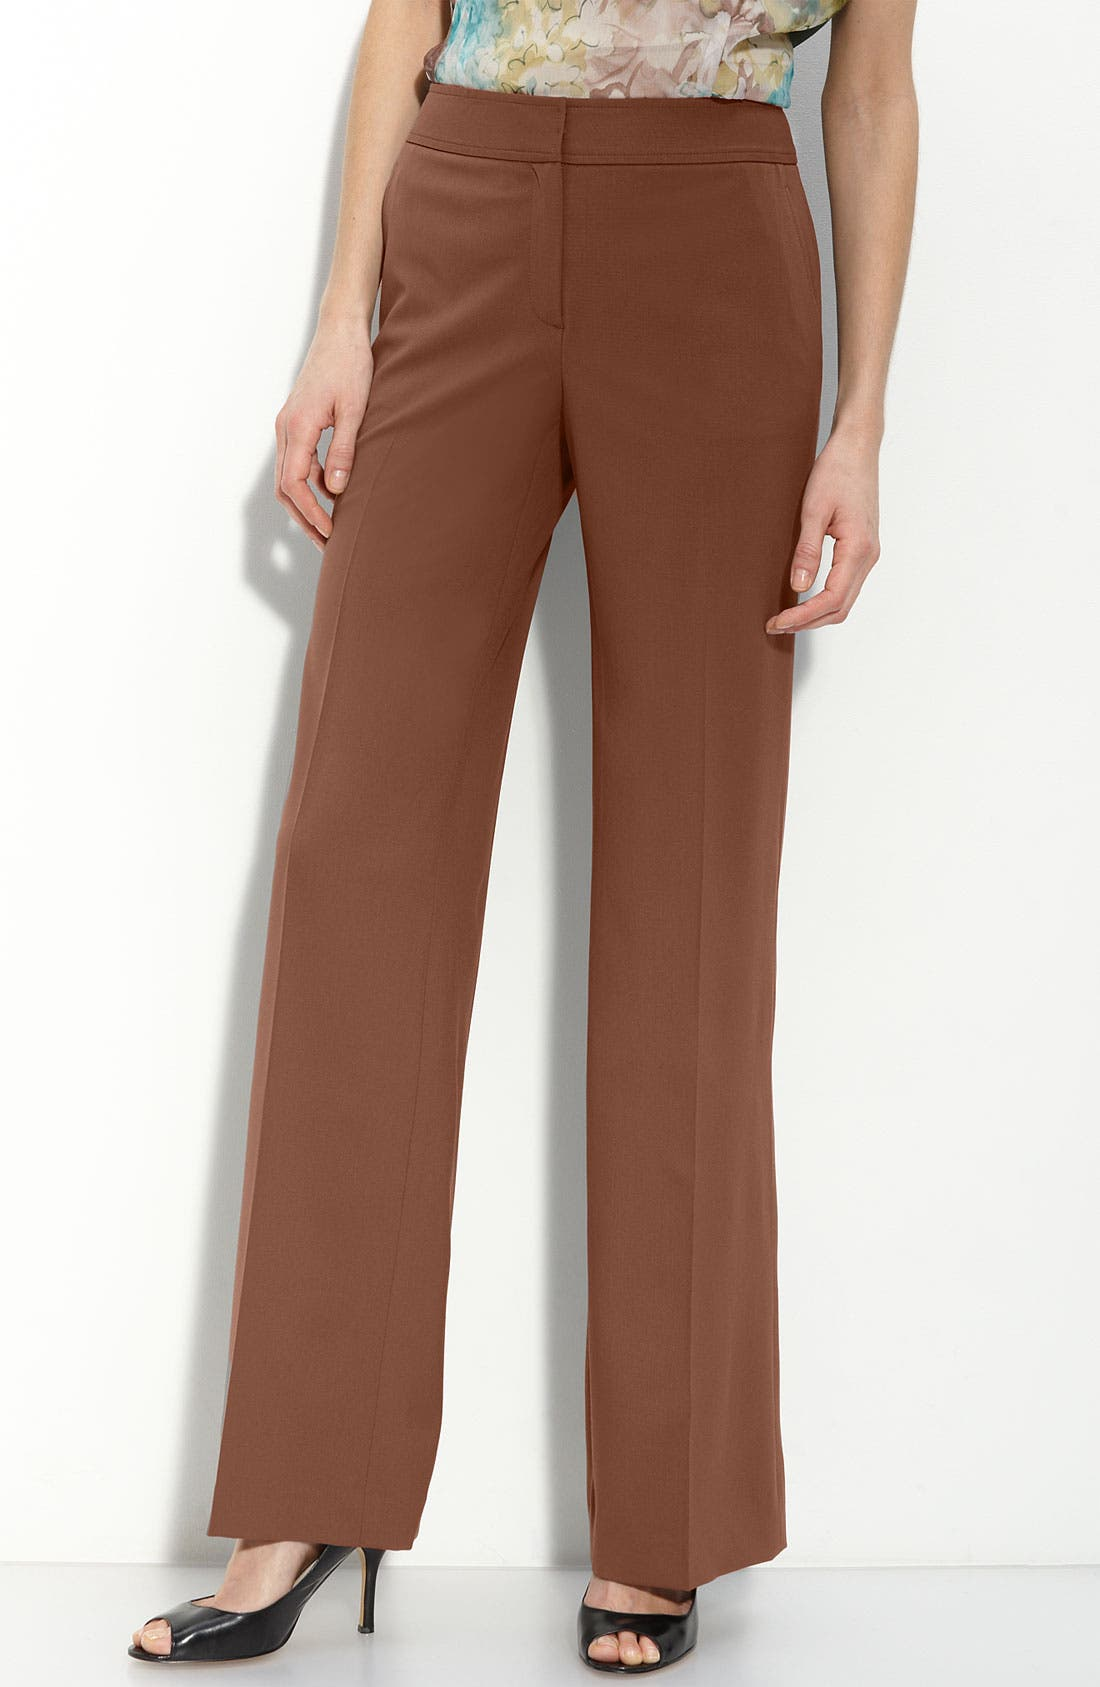 'Delancey' Stretch Wool Pants,                             Main thumbnail 1, color,                             Coconut